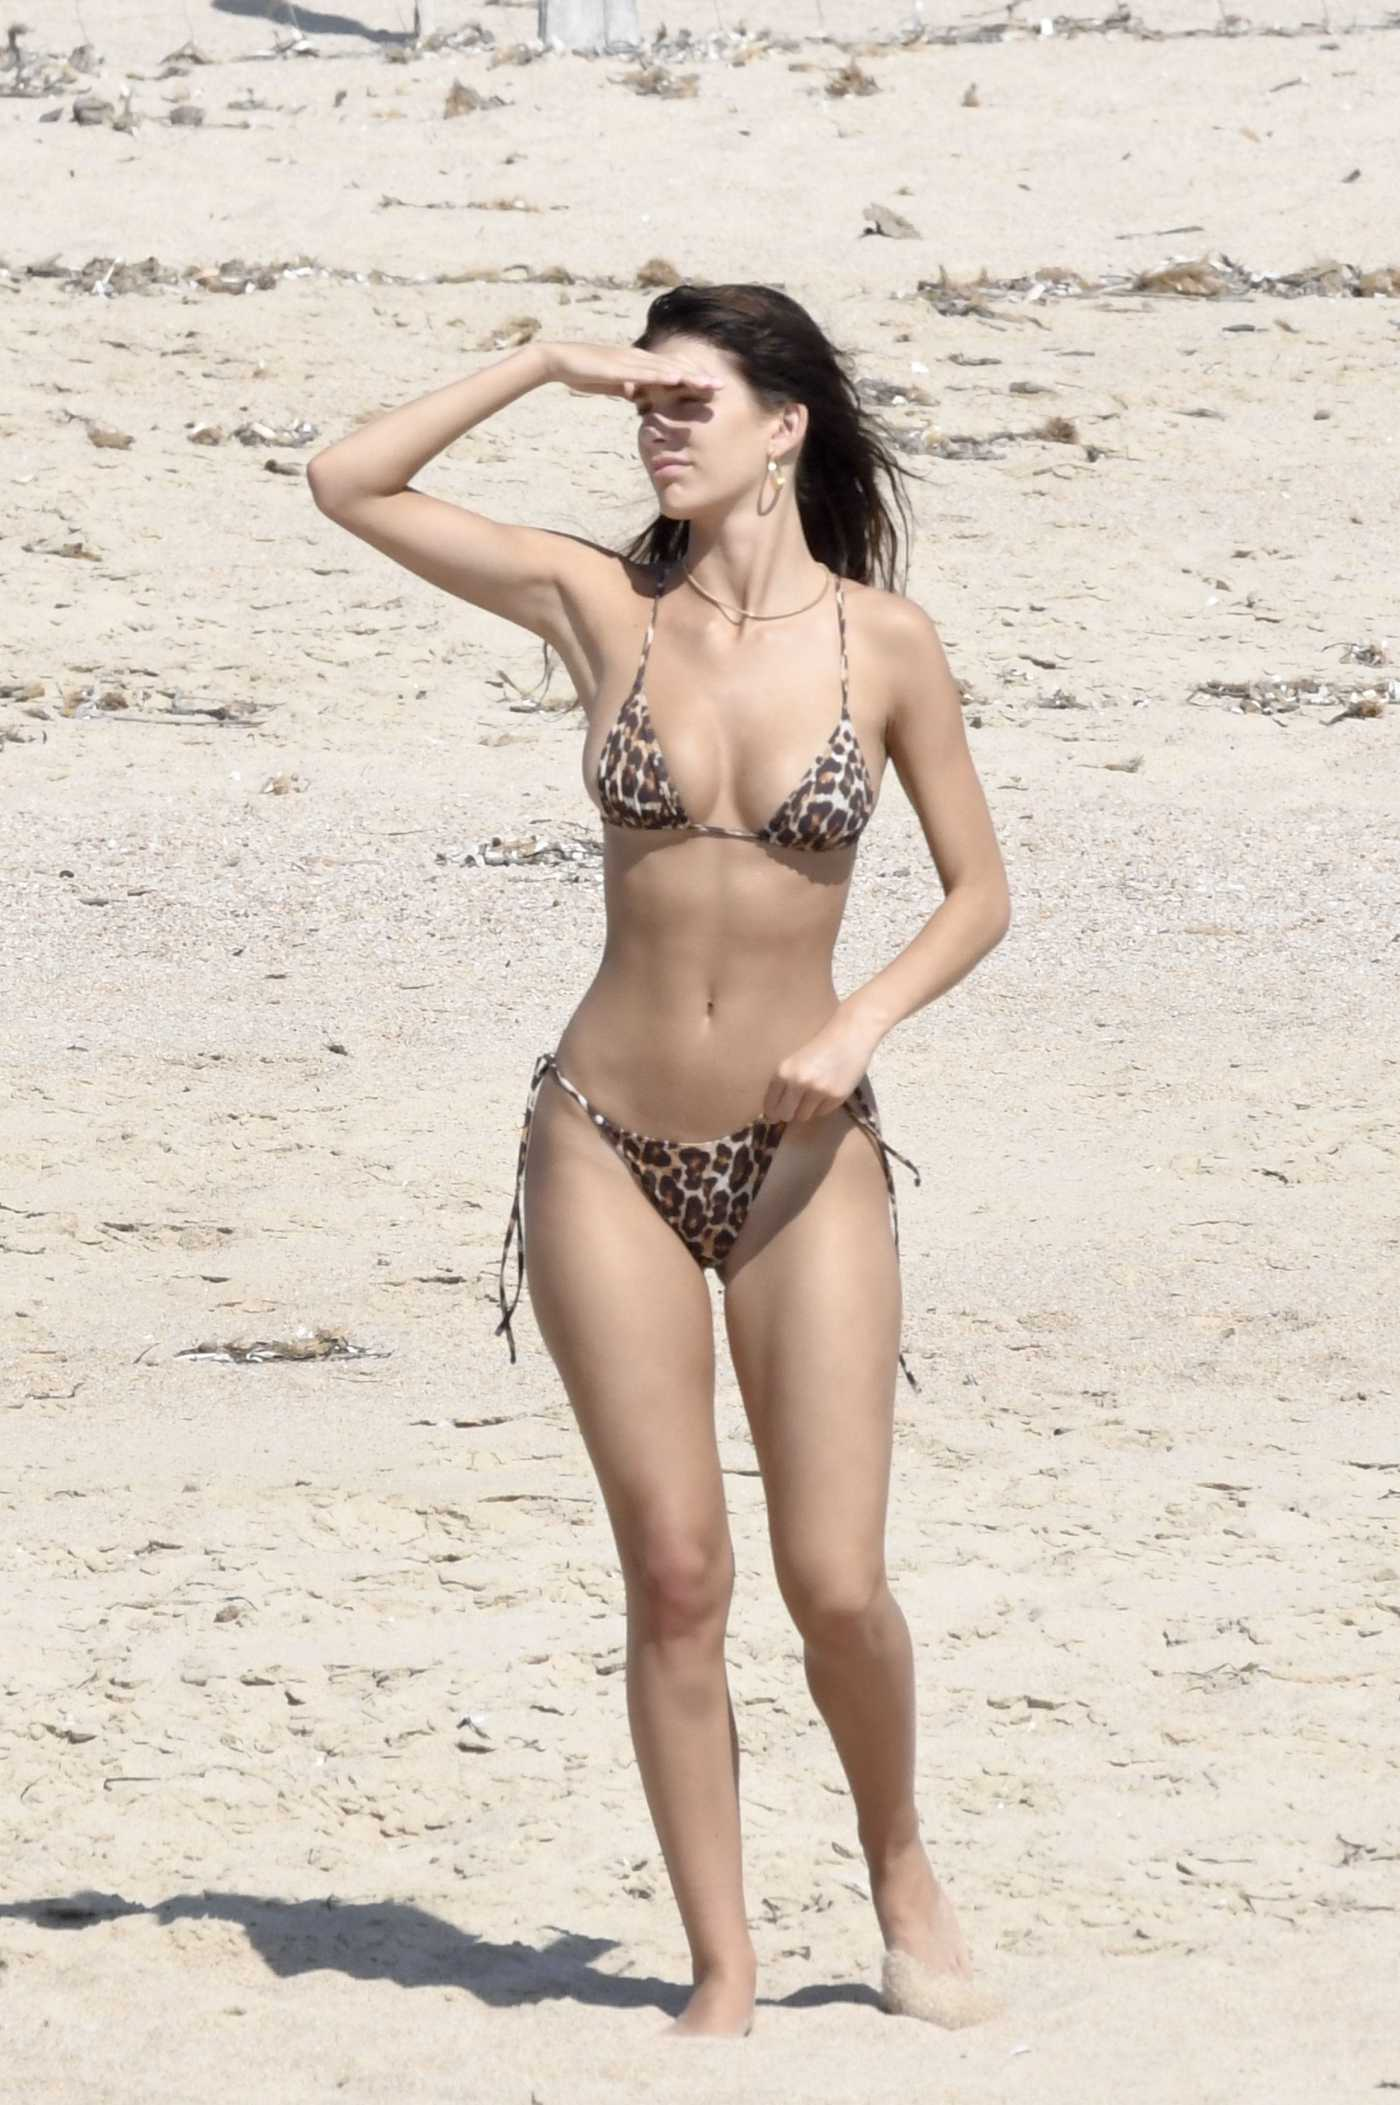 Camila Morrone in a Leopard Print Bikini Was Seen Out with Leonardo DiCaprio on the Beach in Corsica 08/08/2019